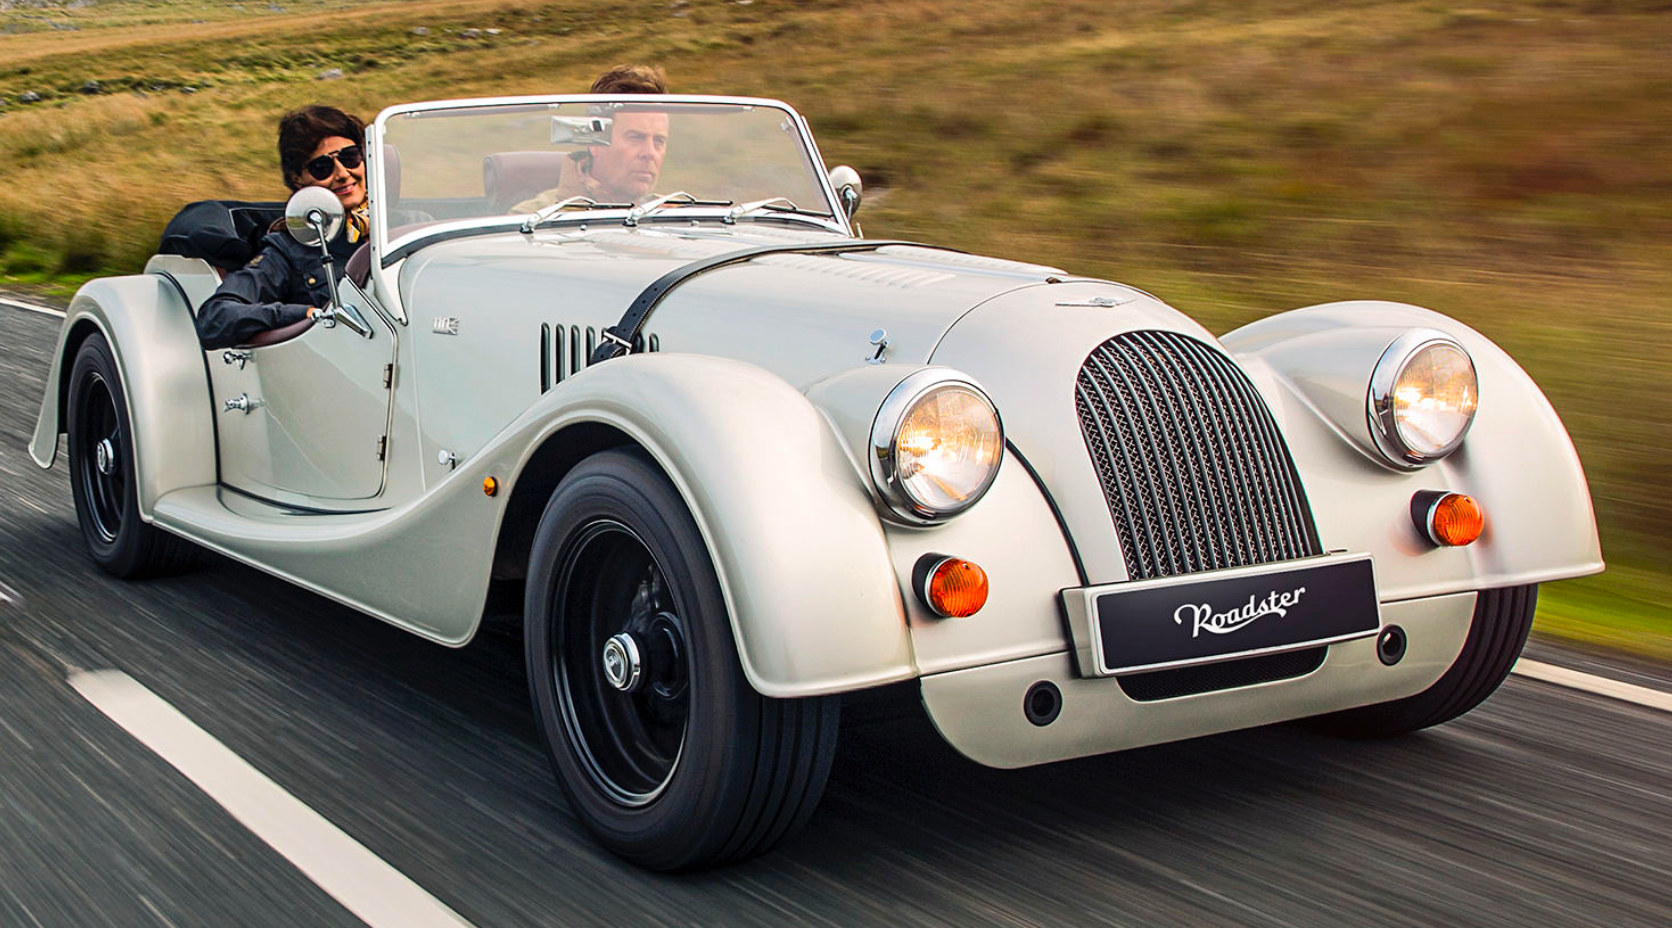 White Morgan car